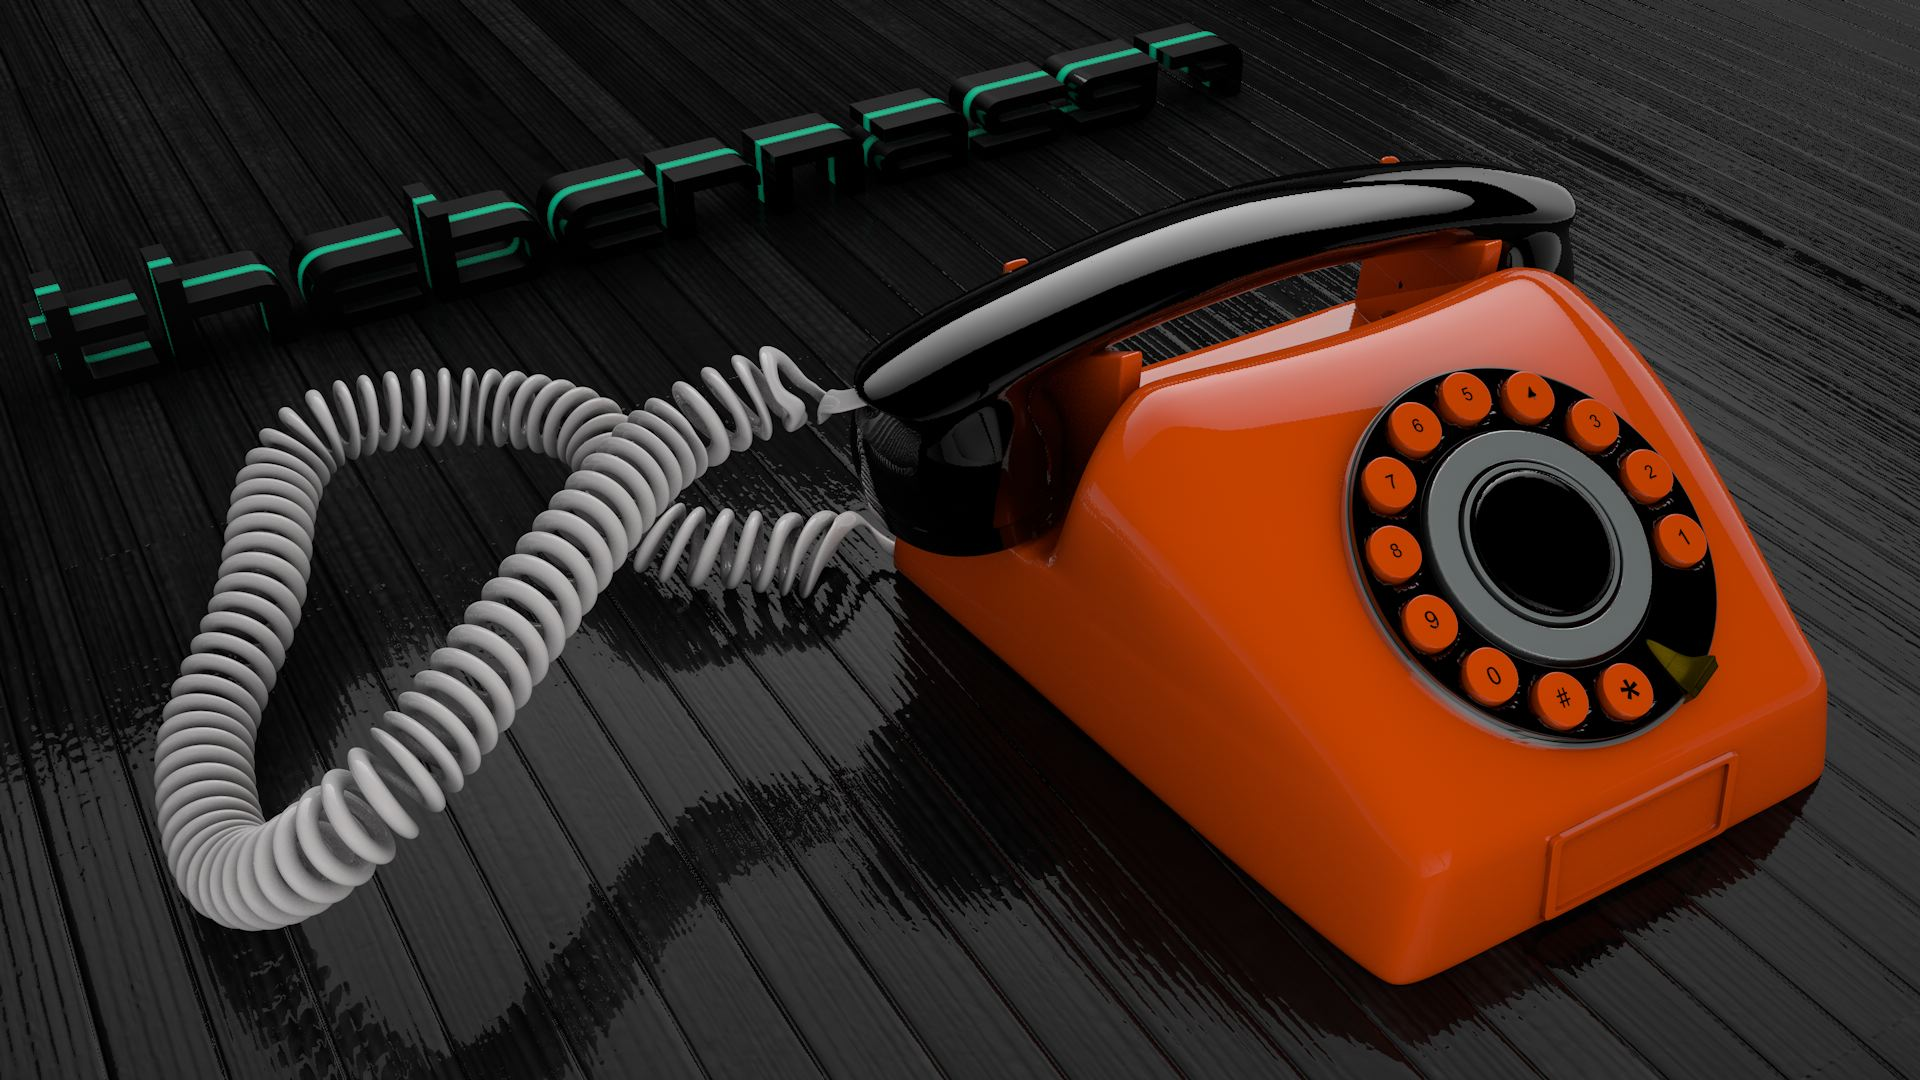 Fabuleux Old Telephone by thebernas97 by Thebernas97 on DeviantArt ZH03